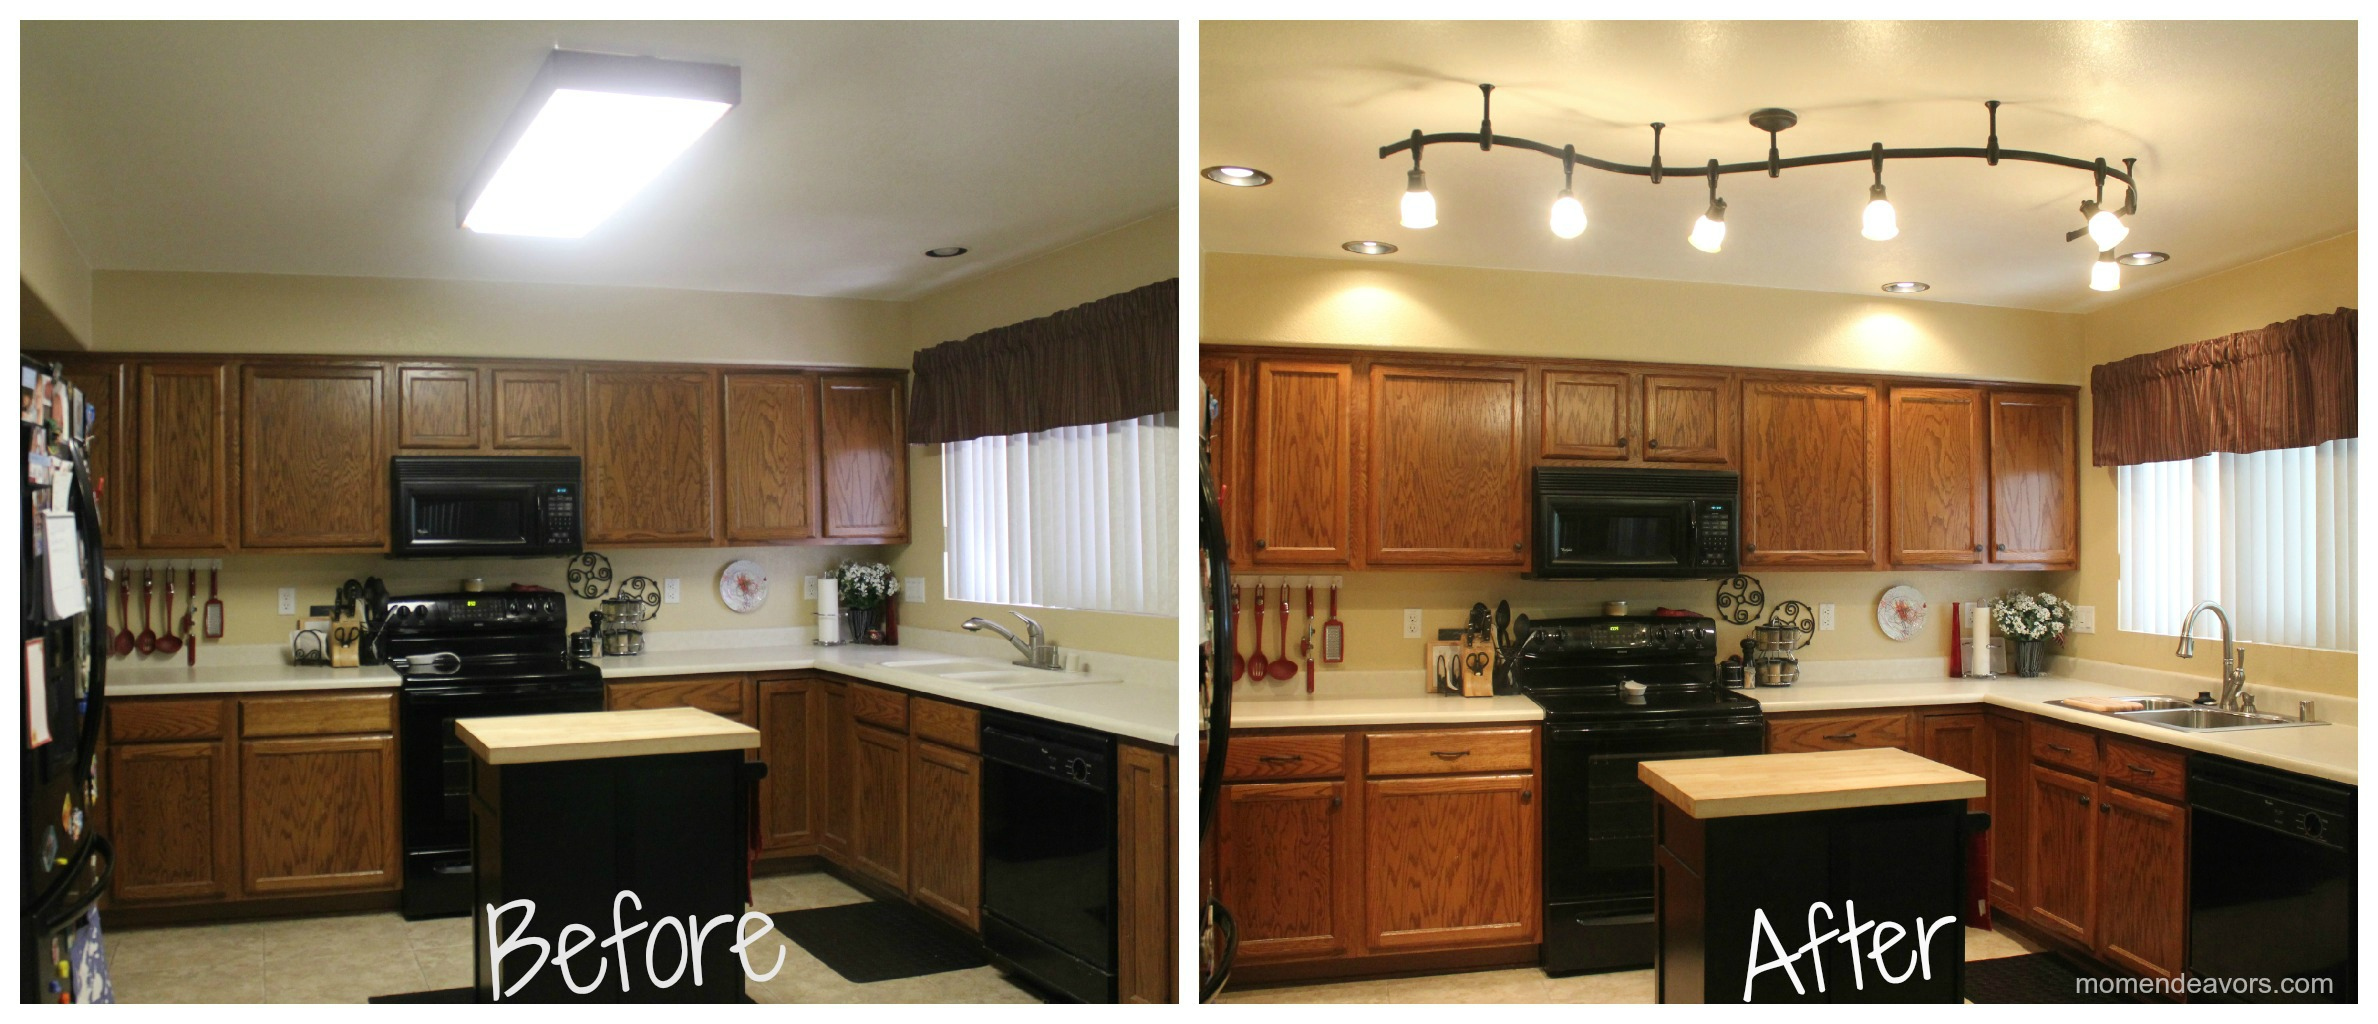 Mini kitchen remodel new lighting makes a world of for Kitchen remodel before after